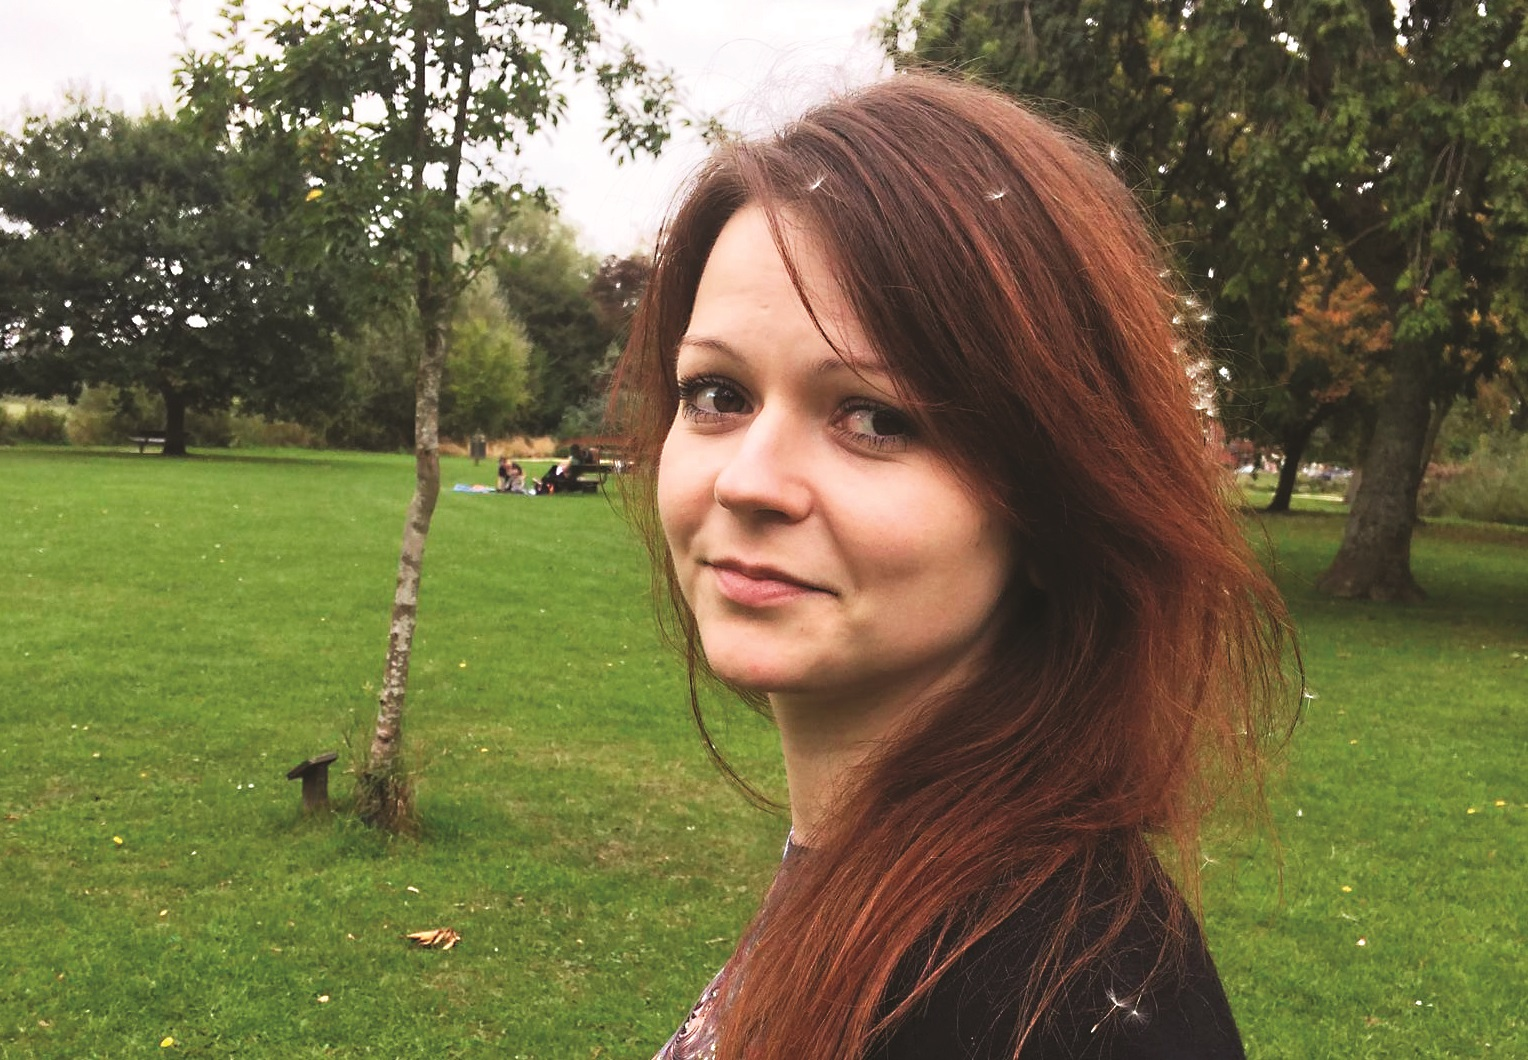 Could the poisoning of Yulia Skripal and her father Sergei have had a personal rather than state motive?